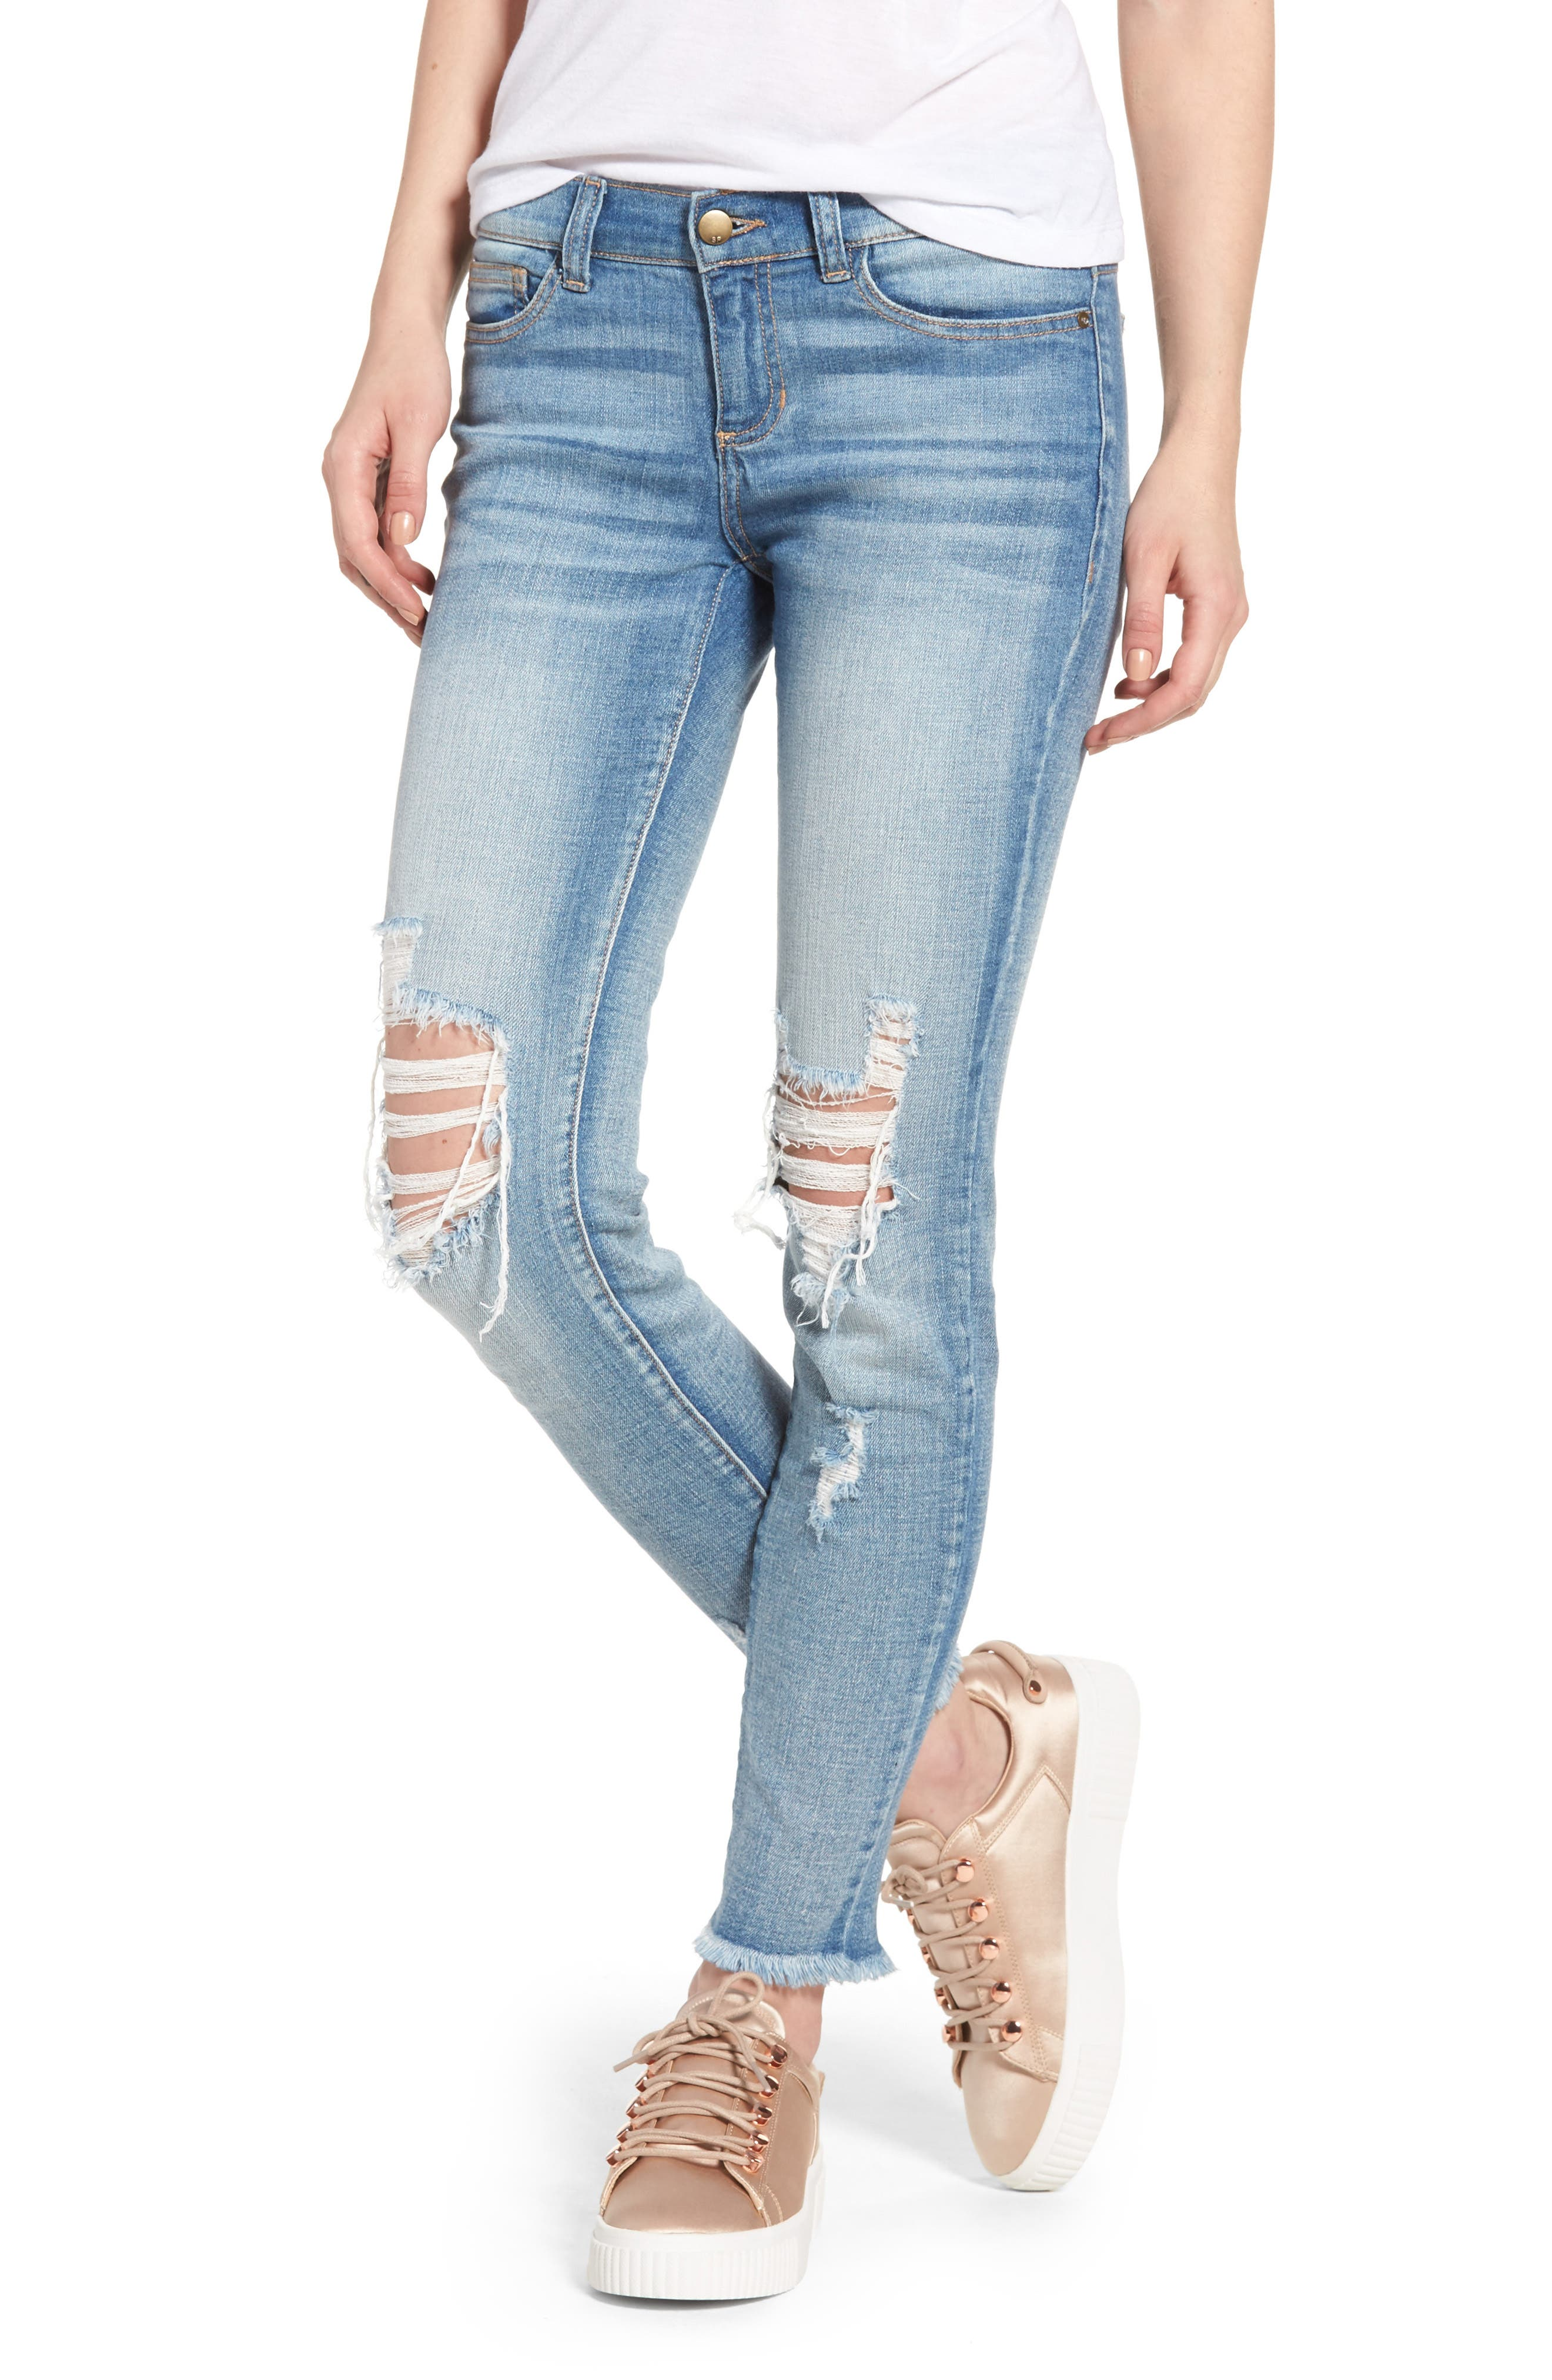 SP BLACK, Ripped Knee Skinny Jeans, Main thumbnail 1, color, 400